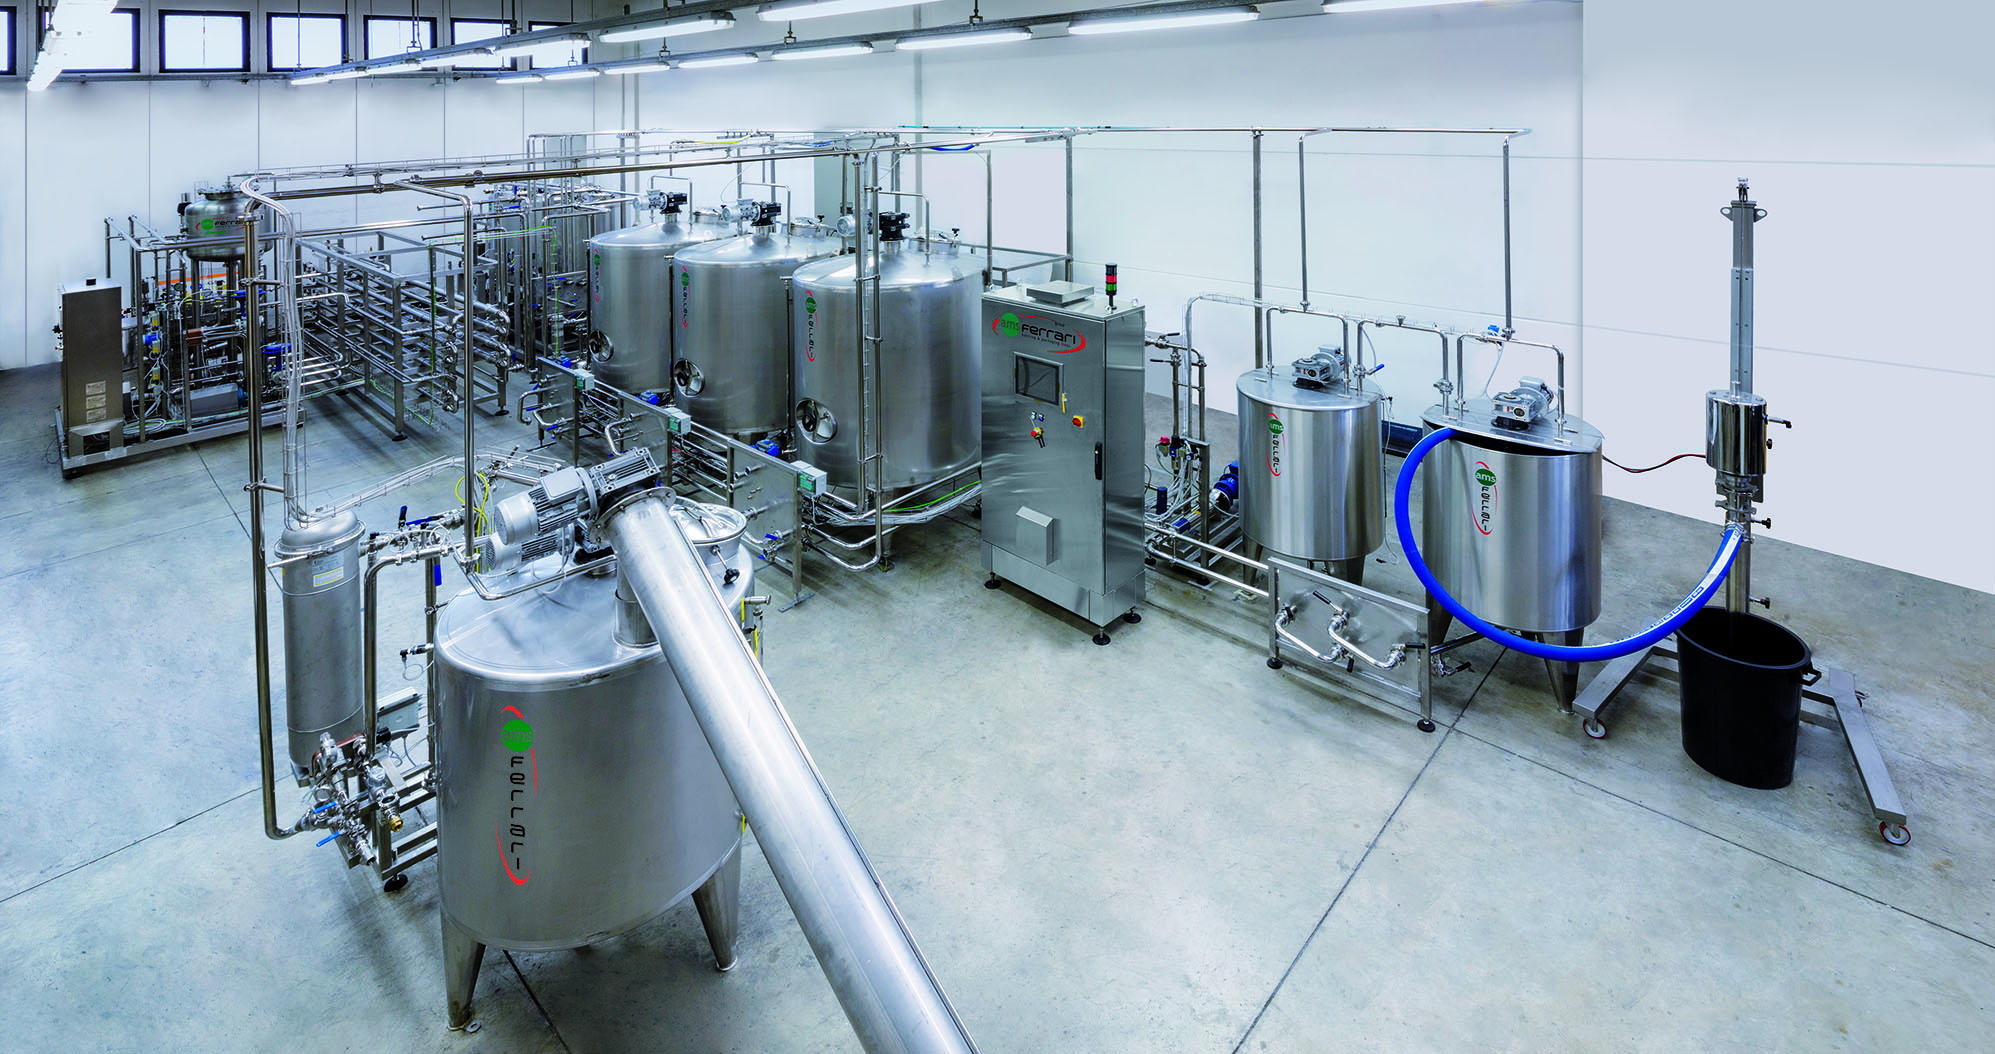 Product picture of processing plants